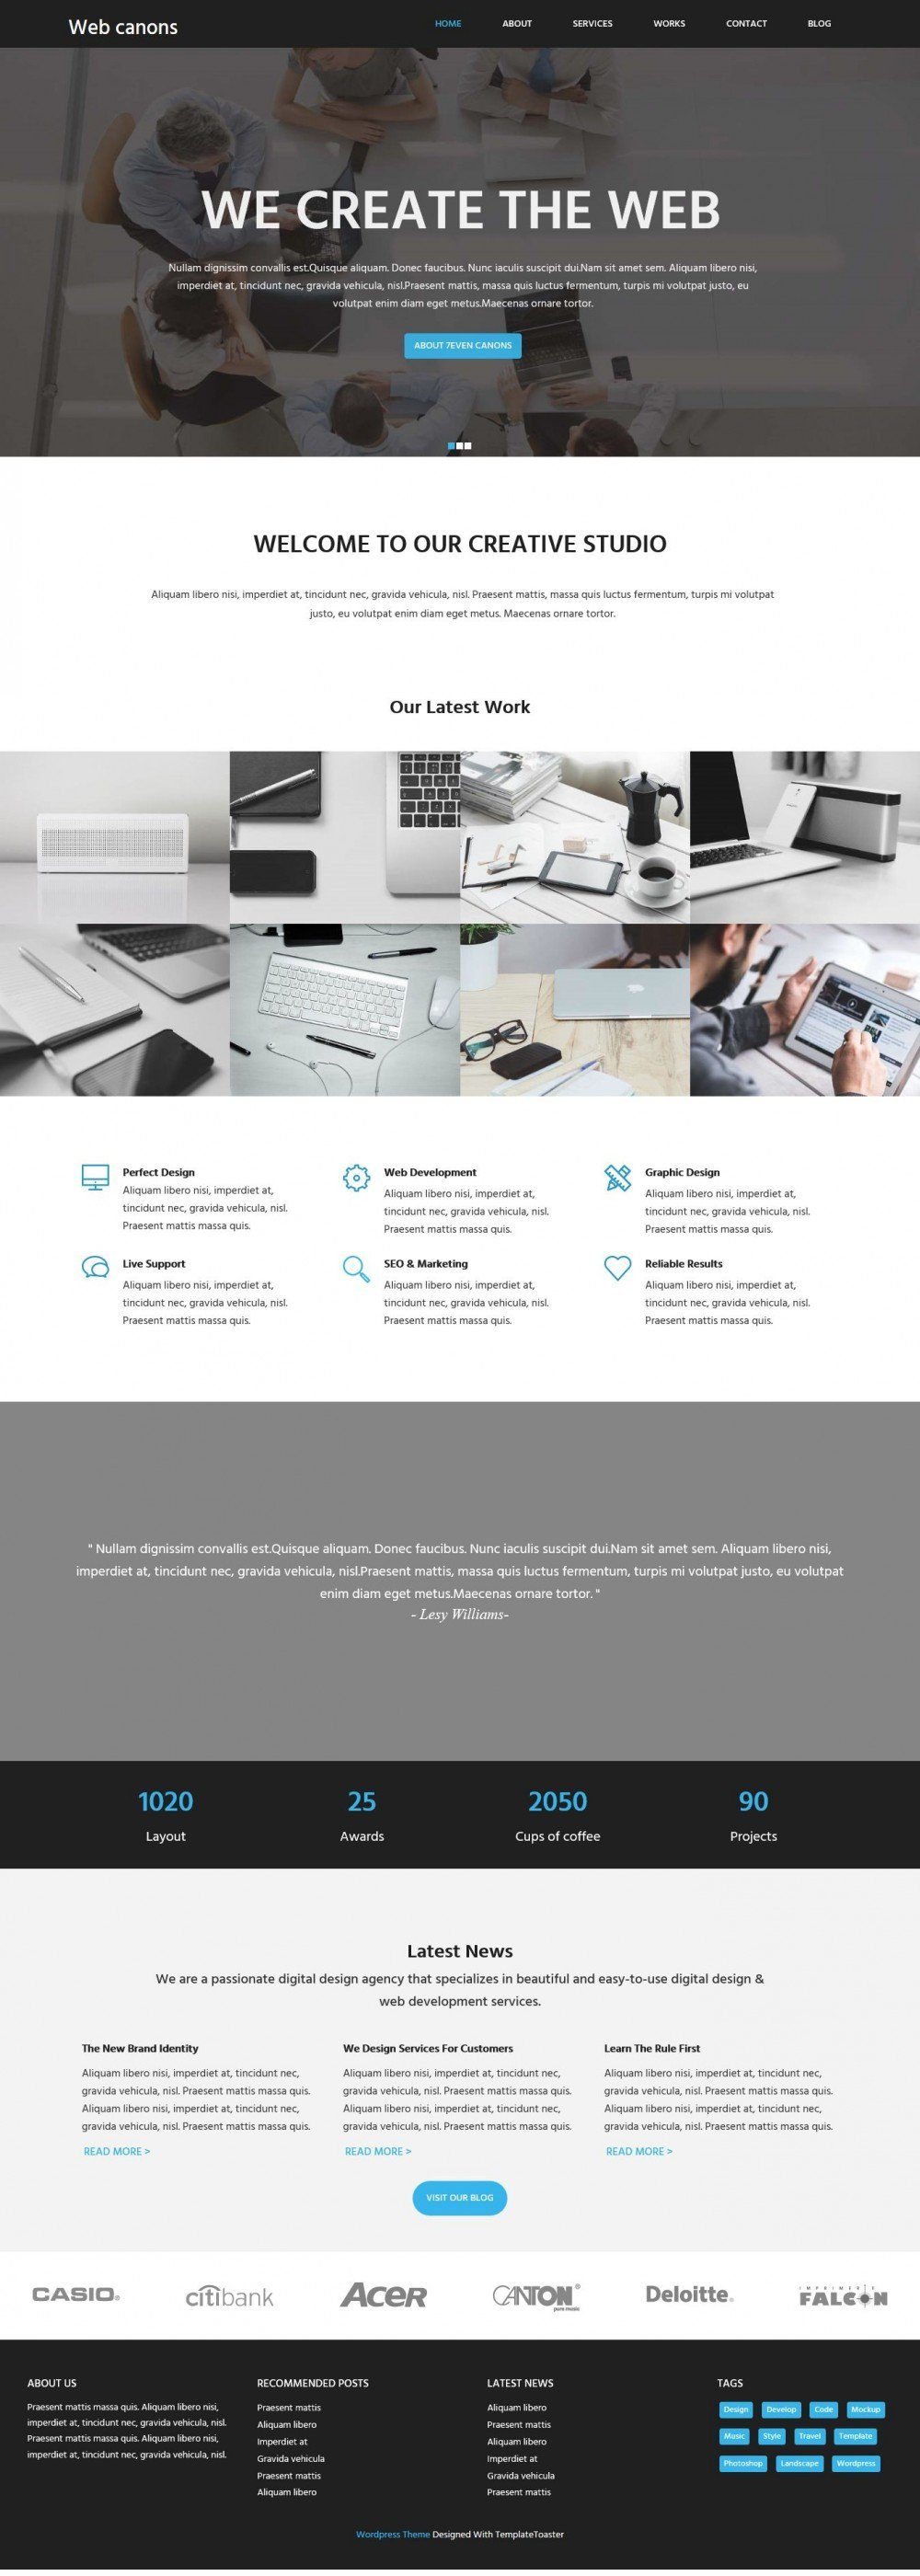 Web Canons Corporate Web Agency Studio HTML Template